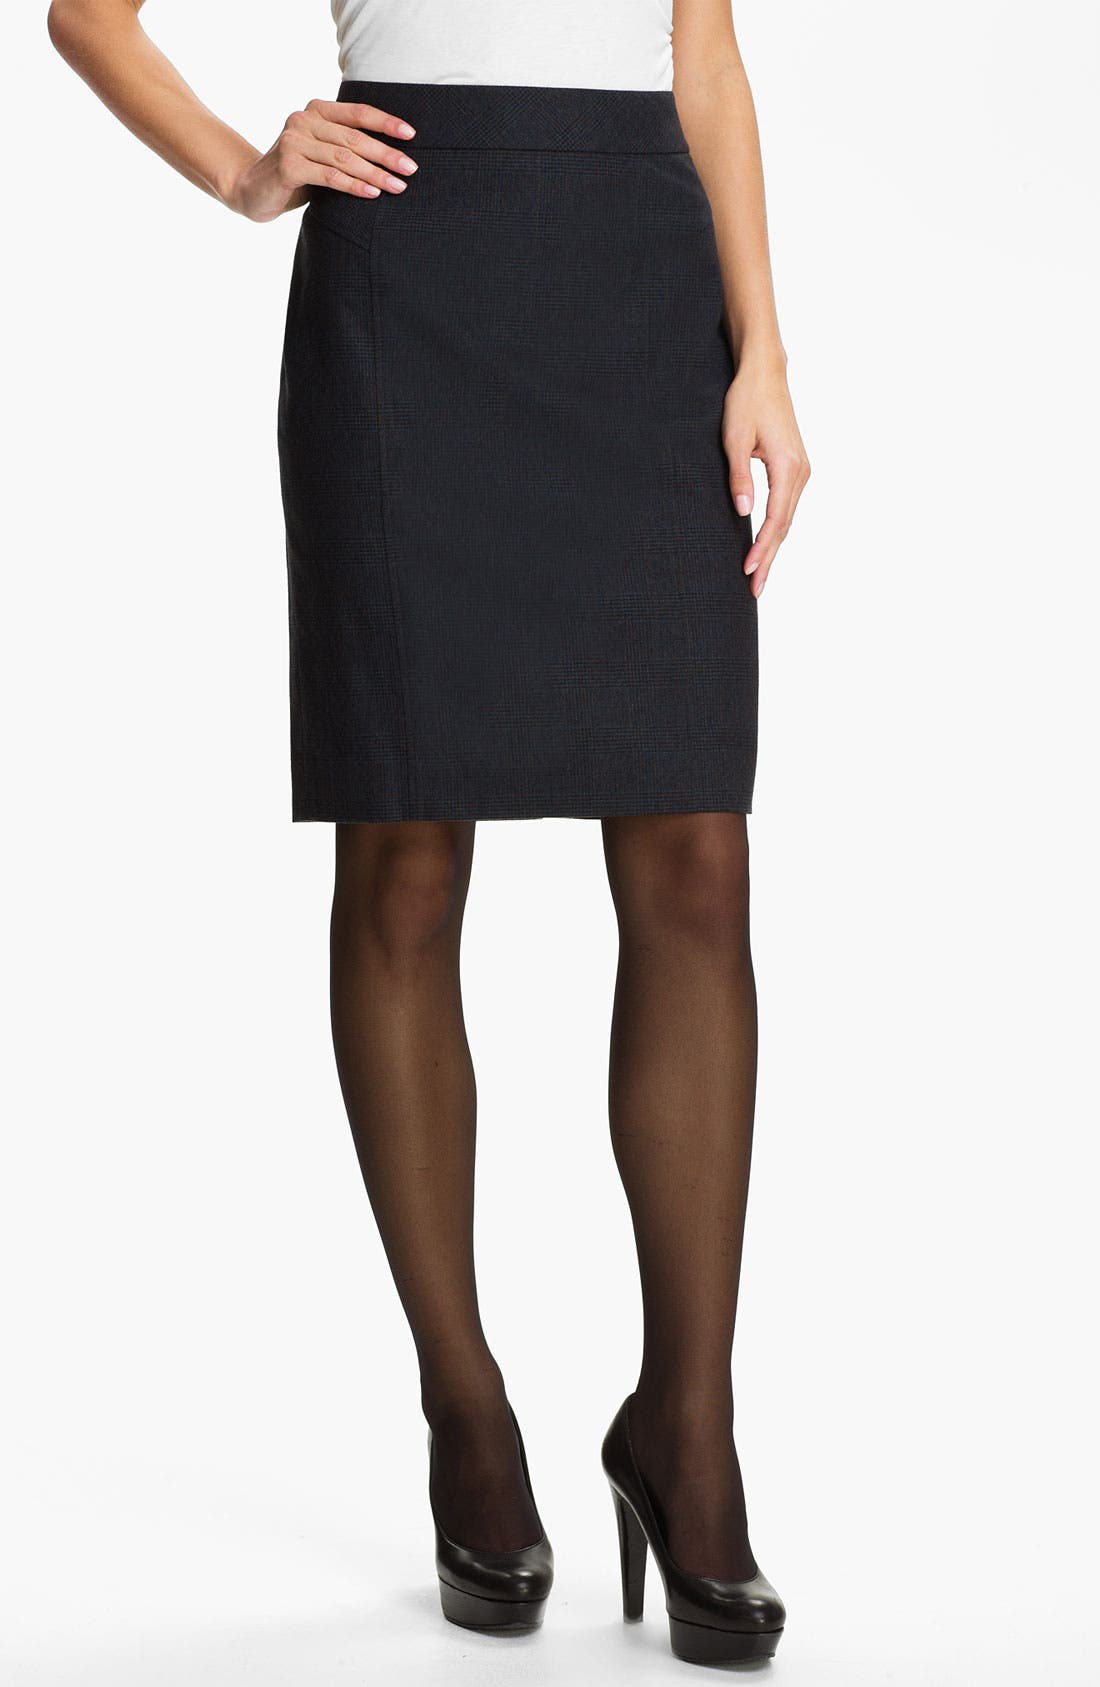 Alternate Image 1 Selected - Classiques Entier® 'Adima Check' Skirt